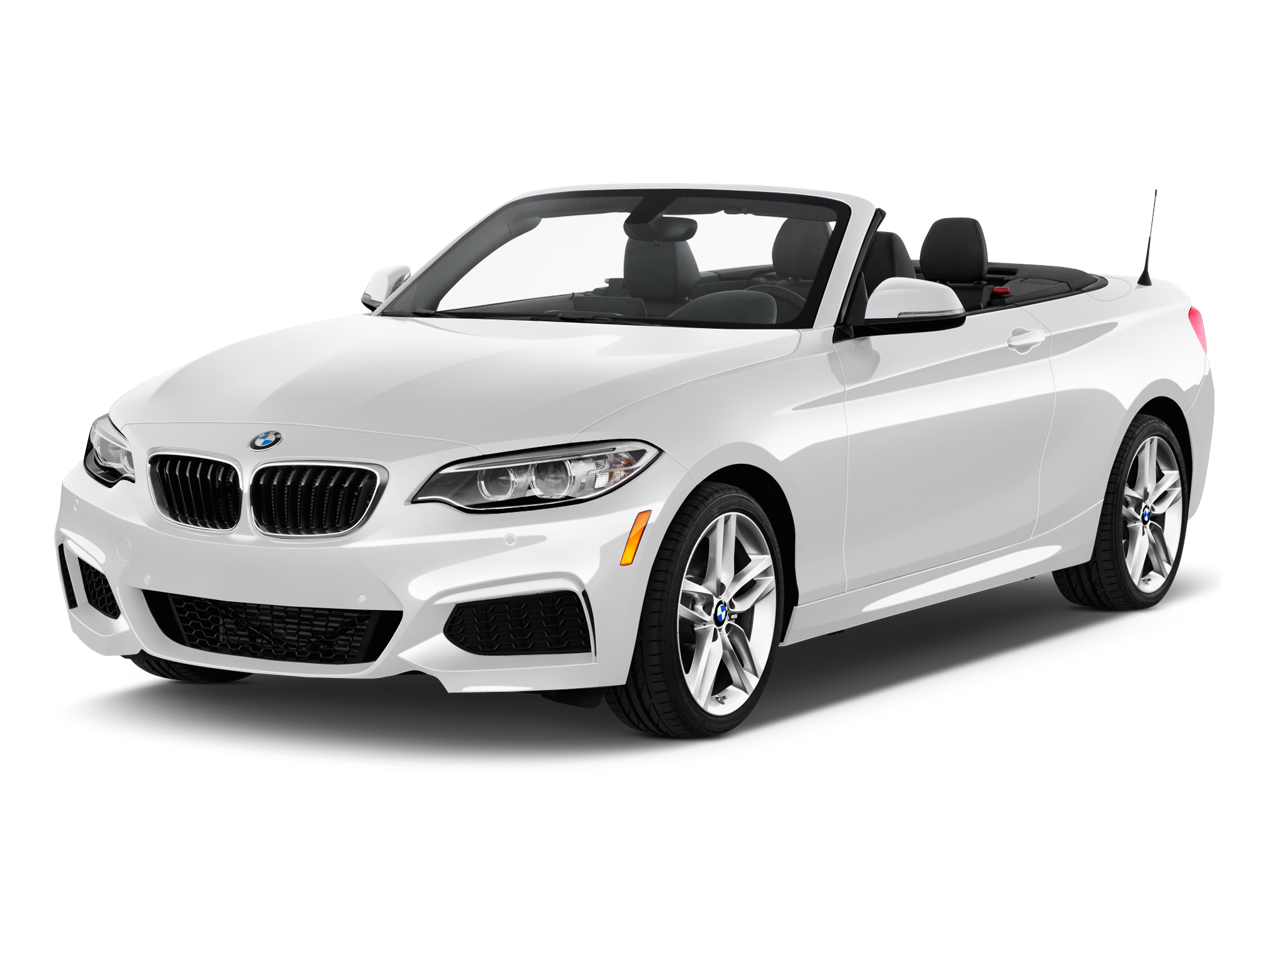 New 2 Series For Sale In Plano TX